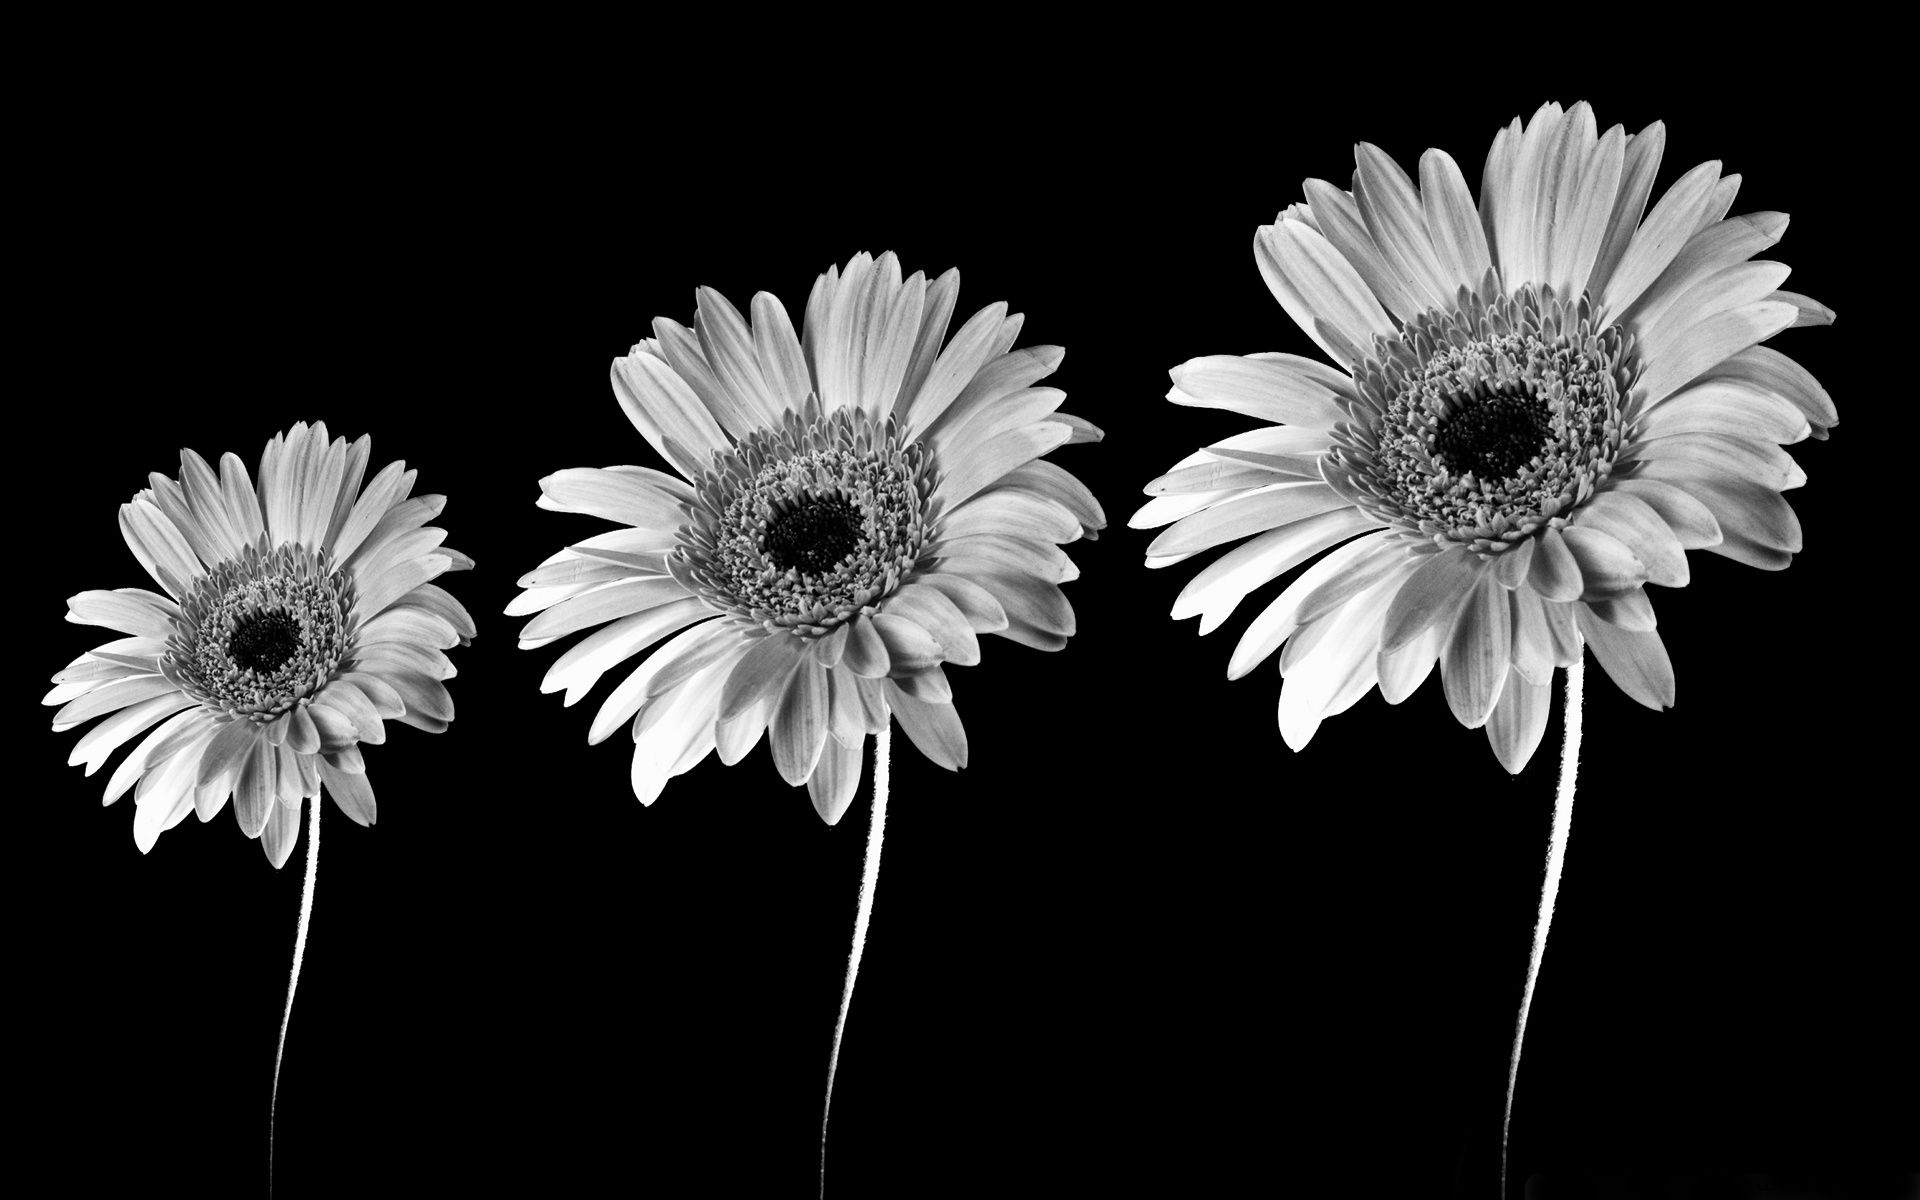 Flowers Black And White Flowers Flowers Black Background White